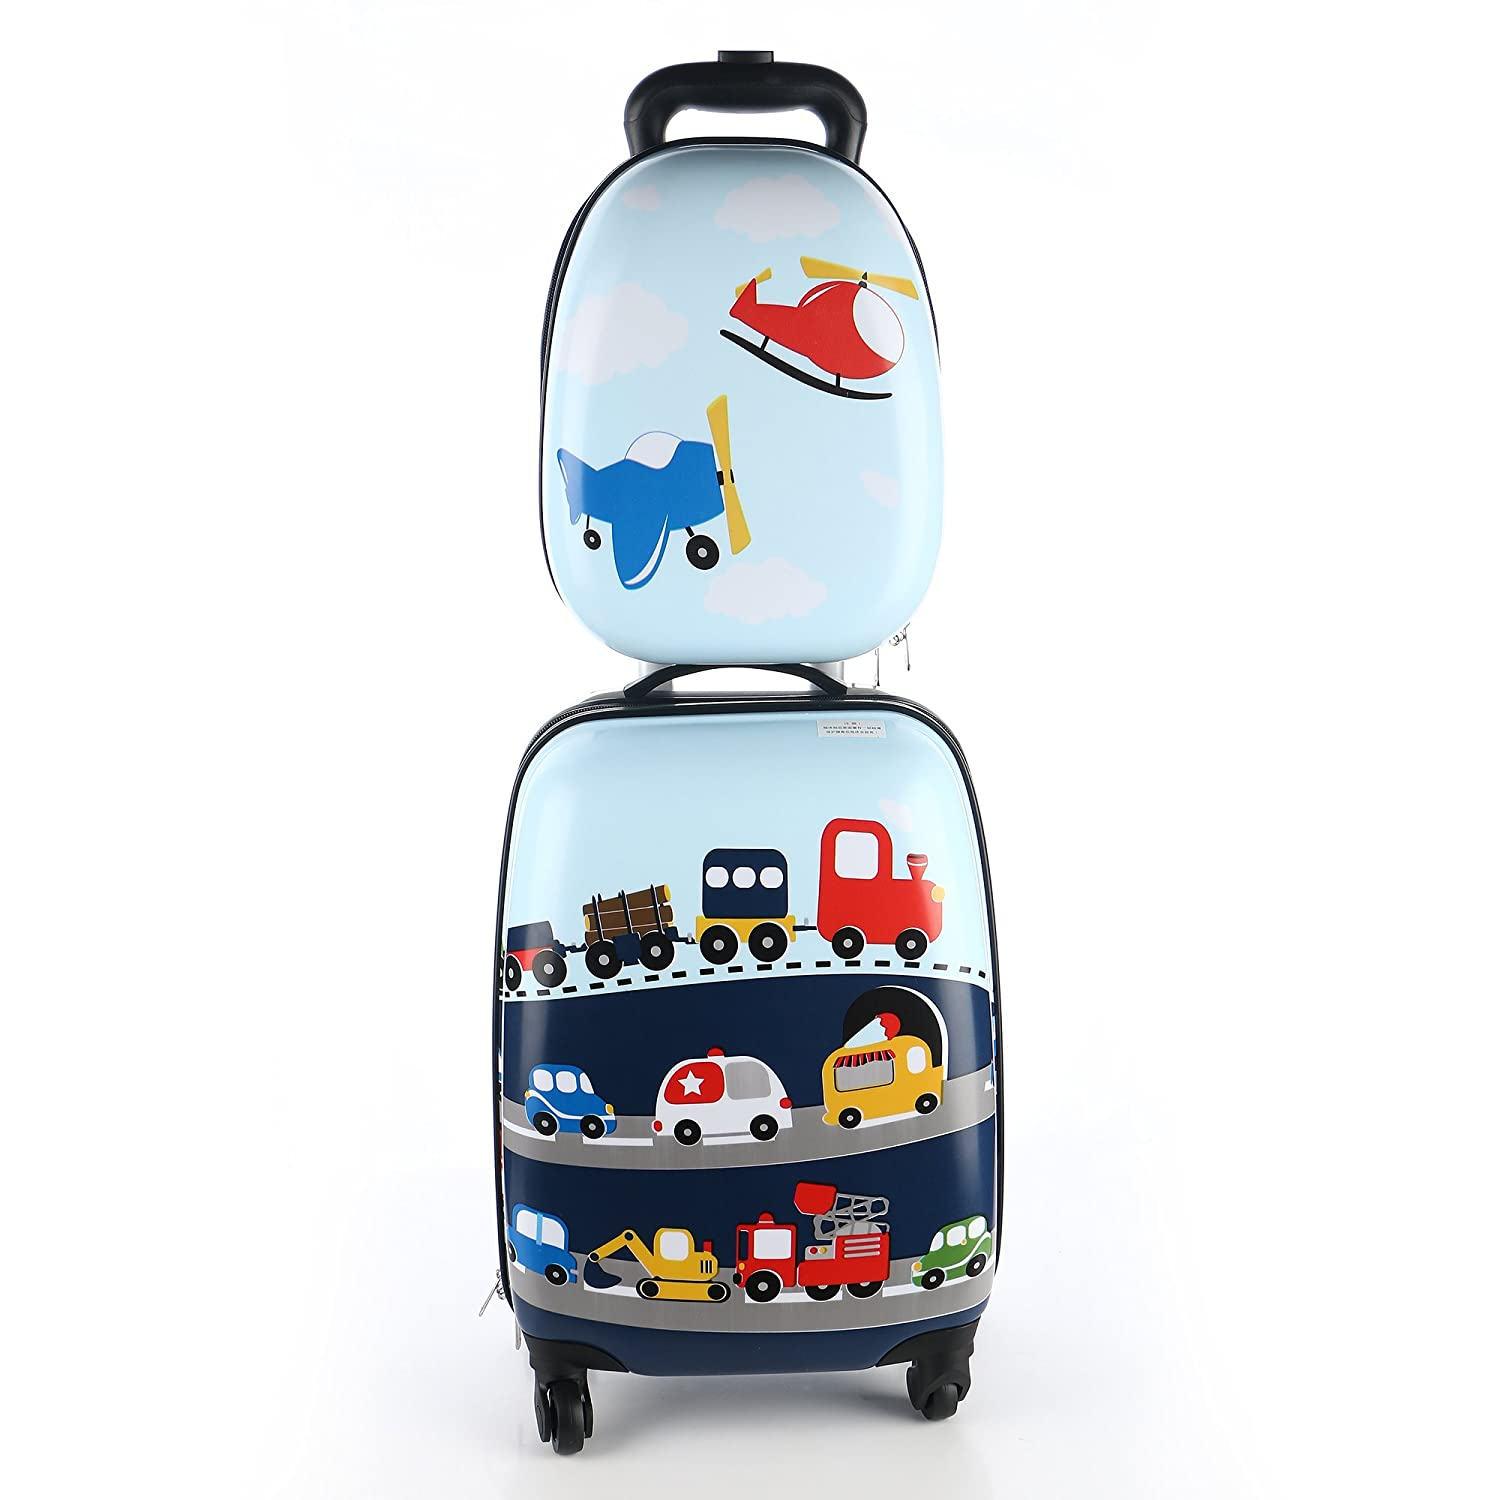 kids luggage  iplay ilearn boy's luggage set  inch luggage   - kids luggage  iplay ilearn boy's luggage set  inch luggage  inchbackpack( cars ) amazoncouk luggage